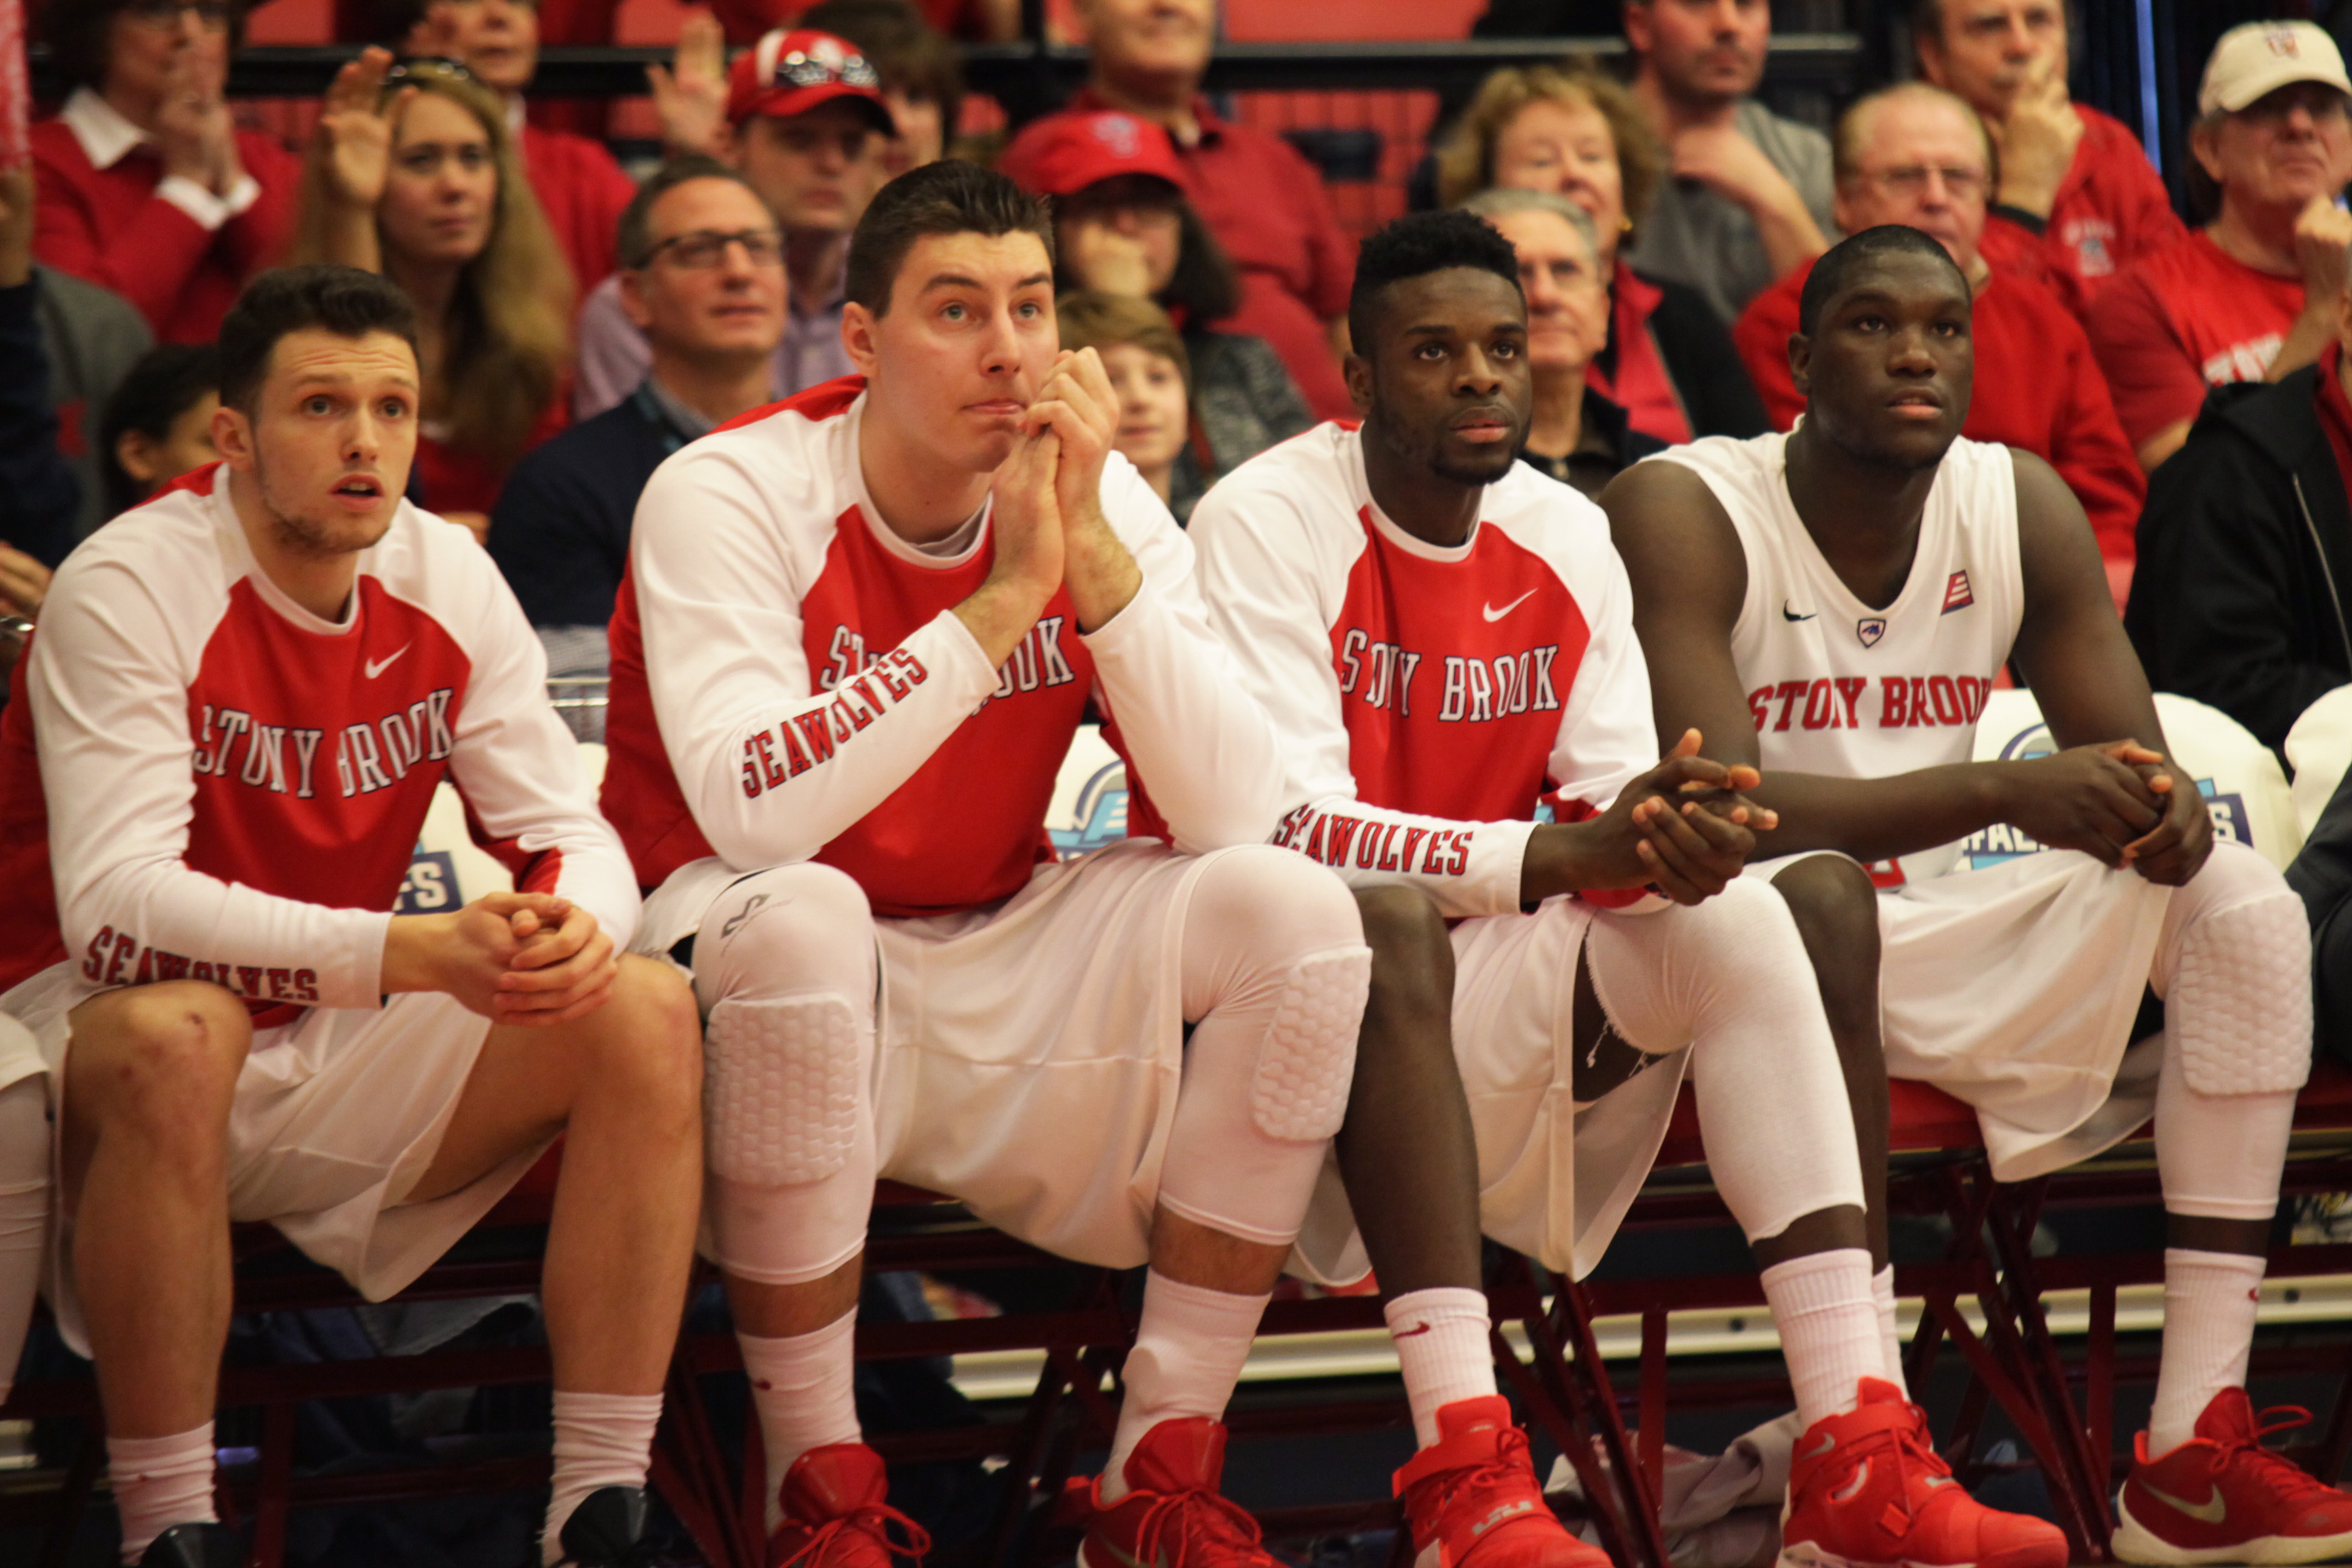 Members of the Stony Brook Men's Basketball team watch on as their teammates battle back a 15-point deficit during their championship game. CHRISTOPHER CAMERON/THE STATESMAN